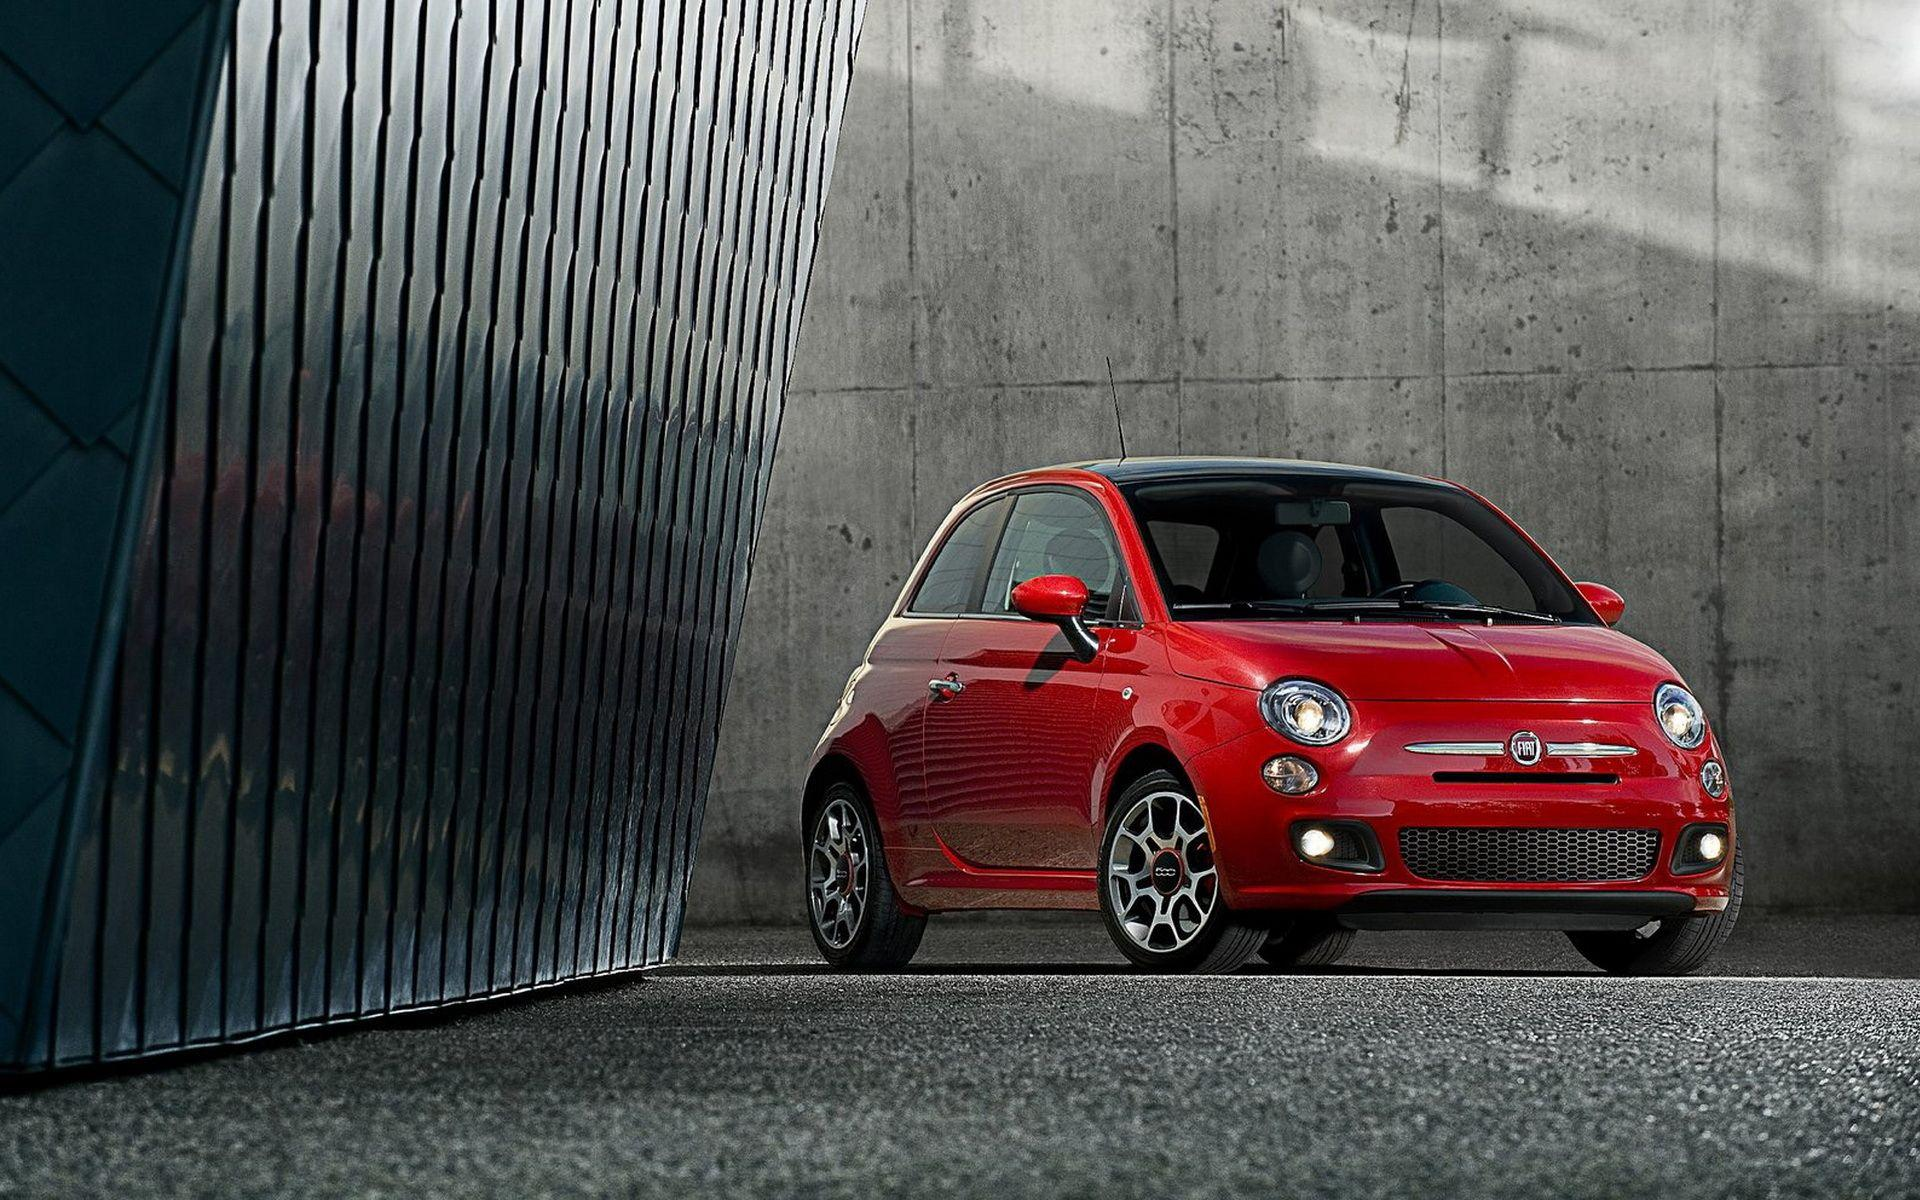 New Fiat-500 Sport wallpapers and images - wallpapers, pictures, photos